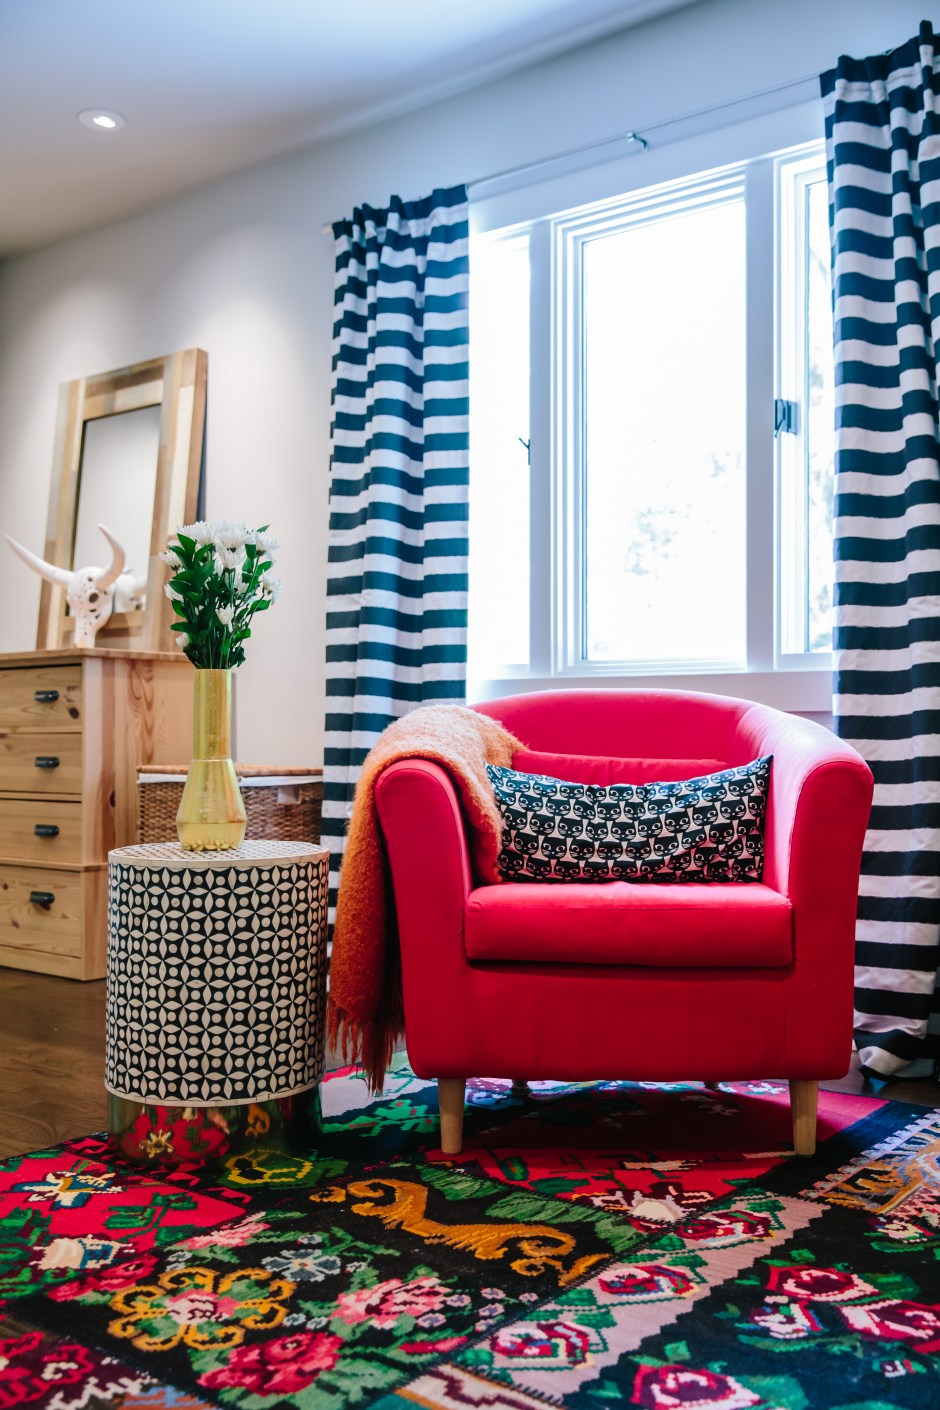 The Creative, Bold & Colourful Home of Paola Roder | Bold colourful bedroom seating area showing how to use pattern on pattern to great effect.